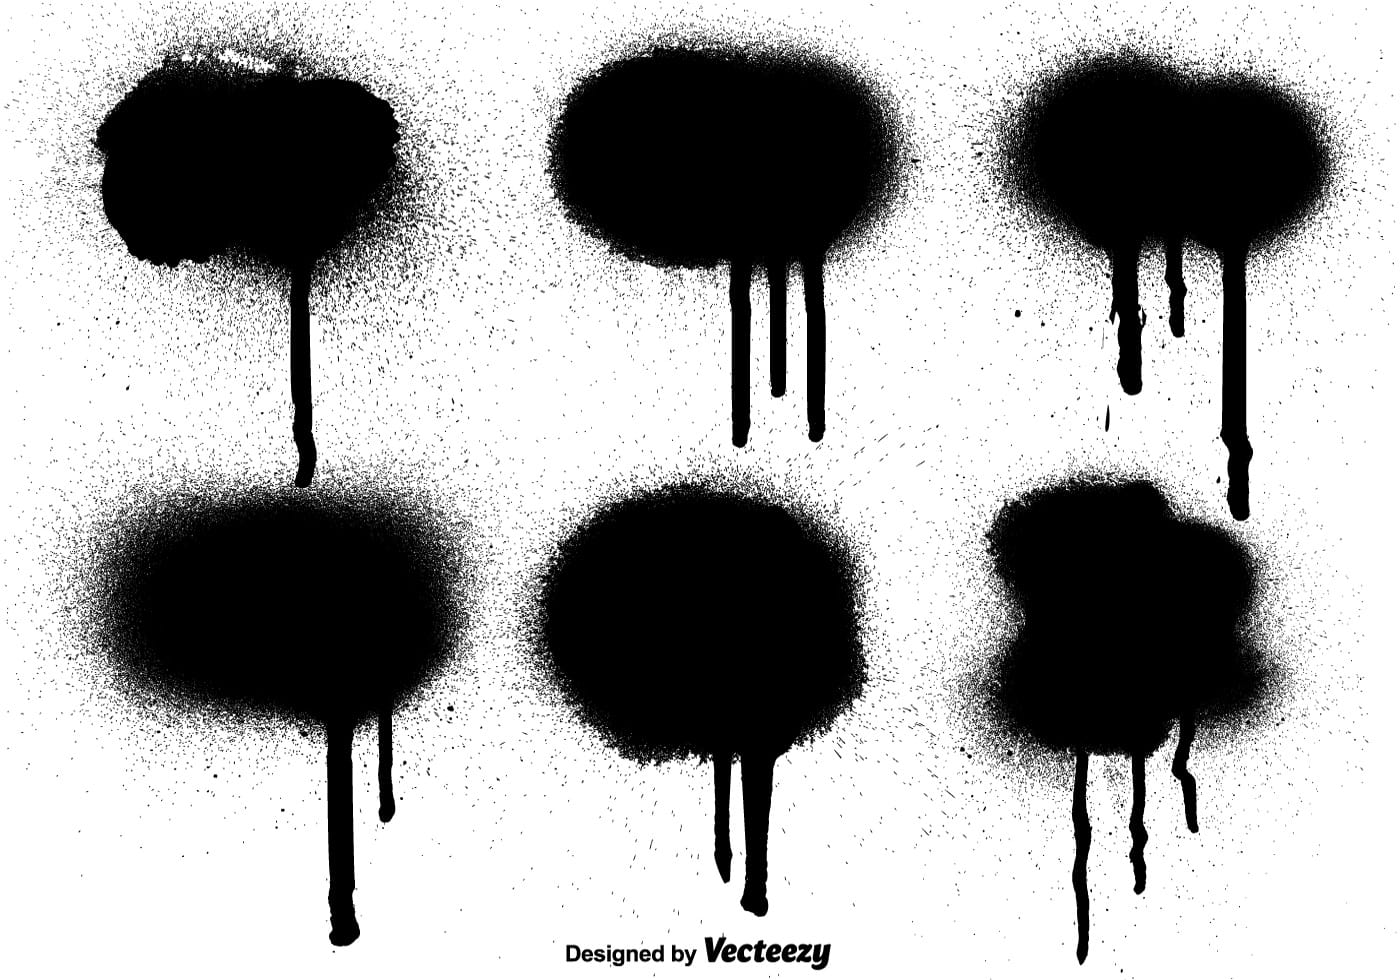 Vector Graffiti Black Paint Drips Elements Download Free